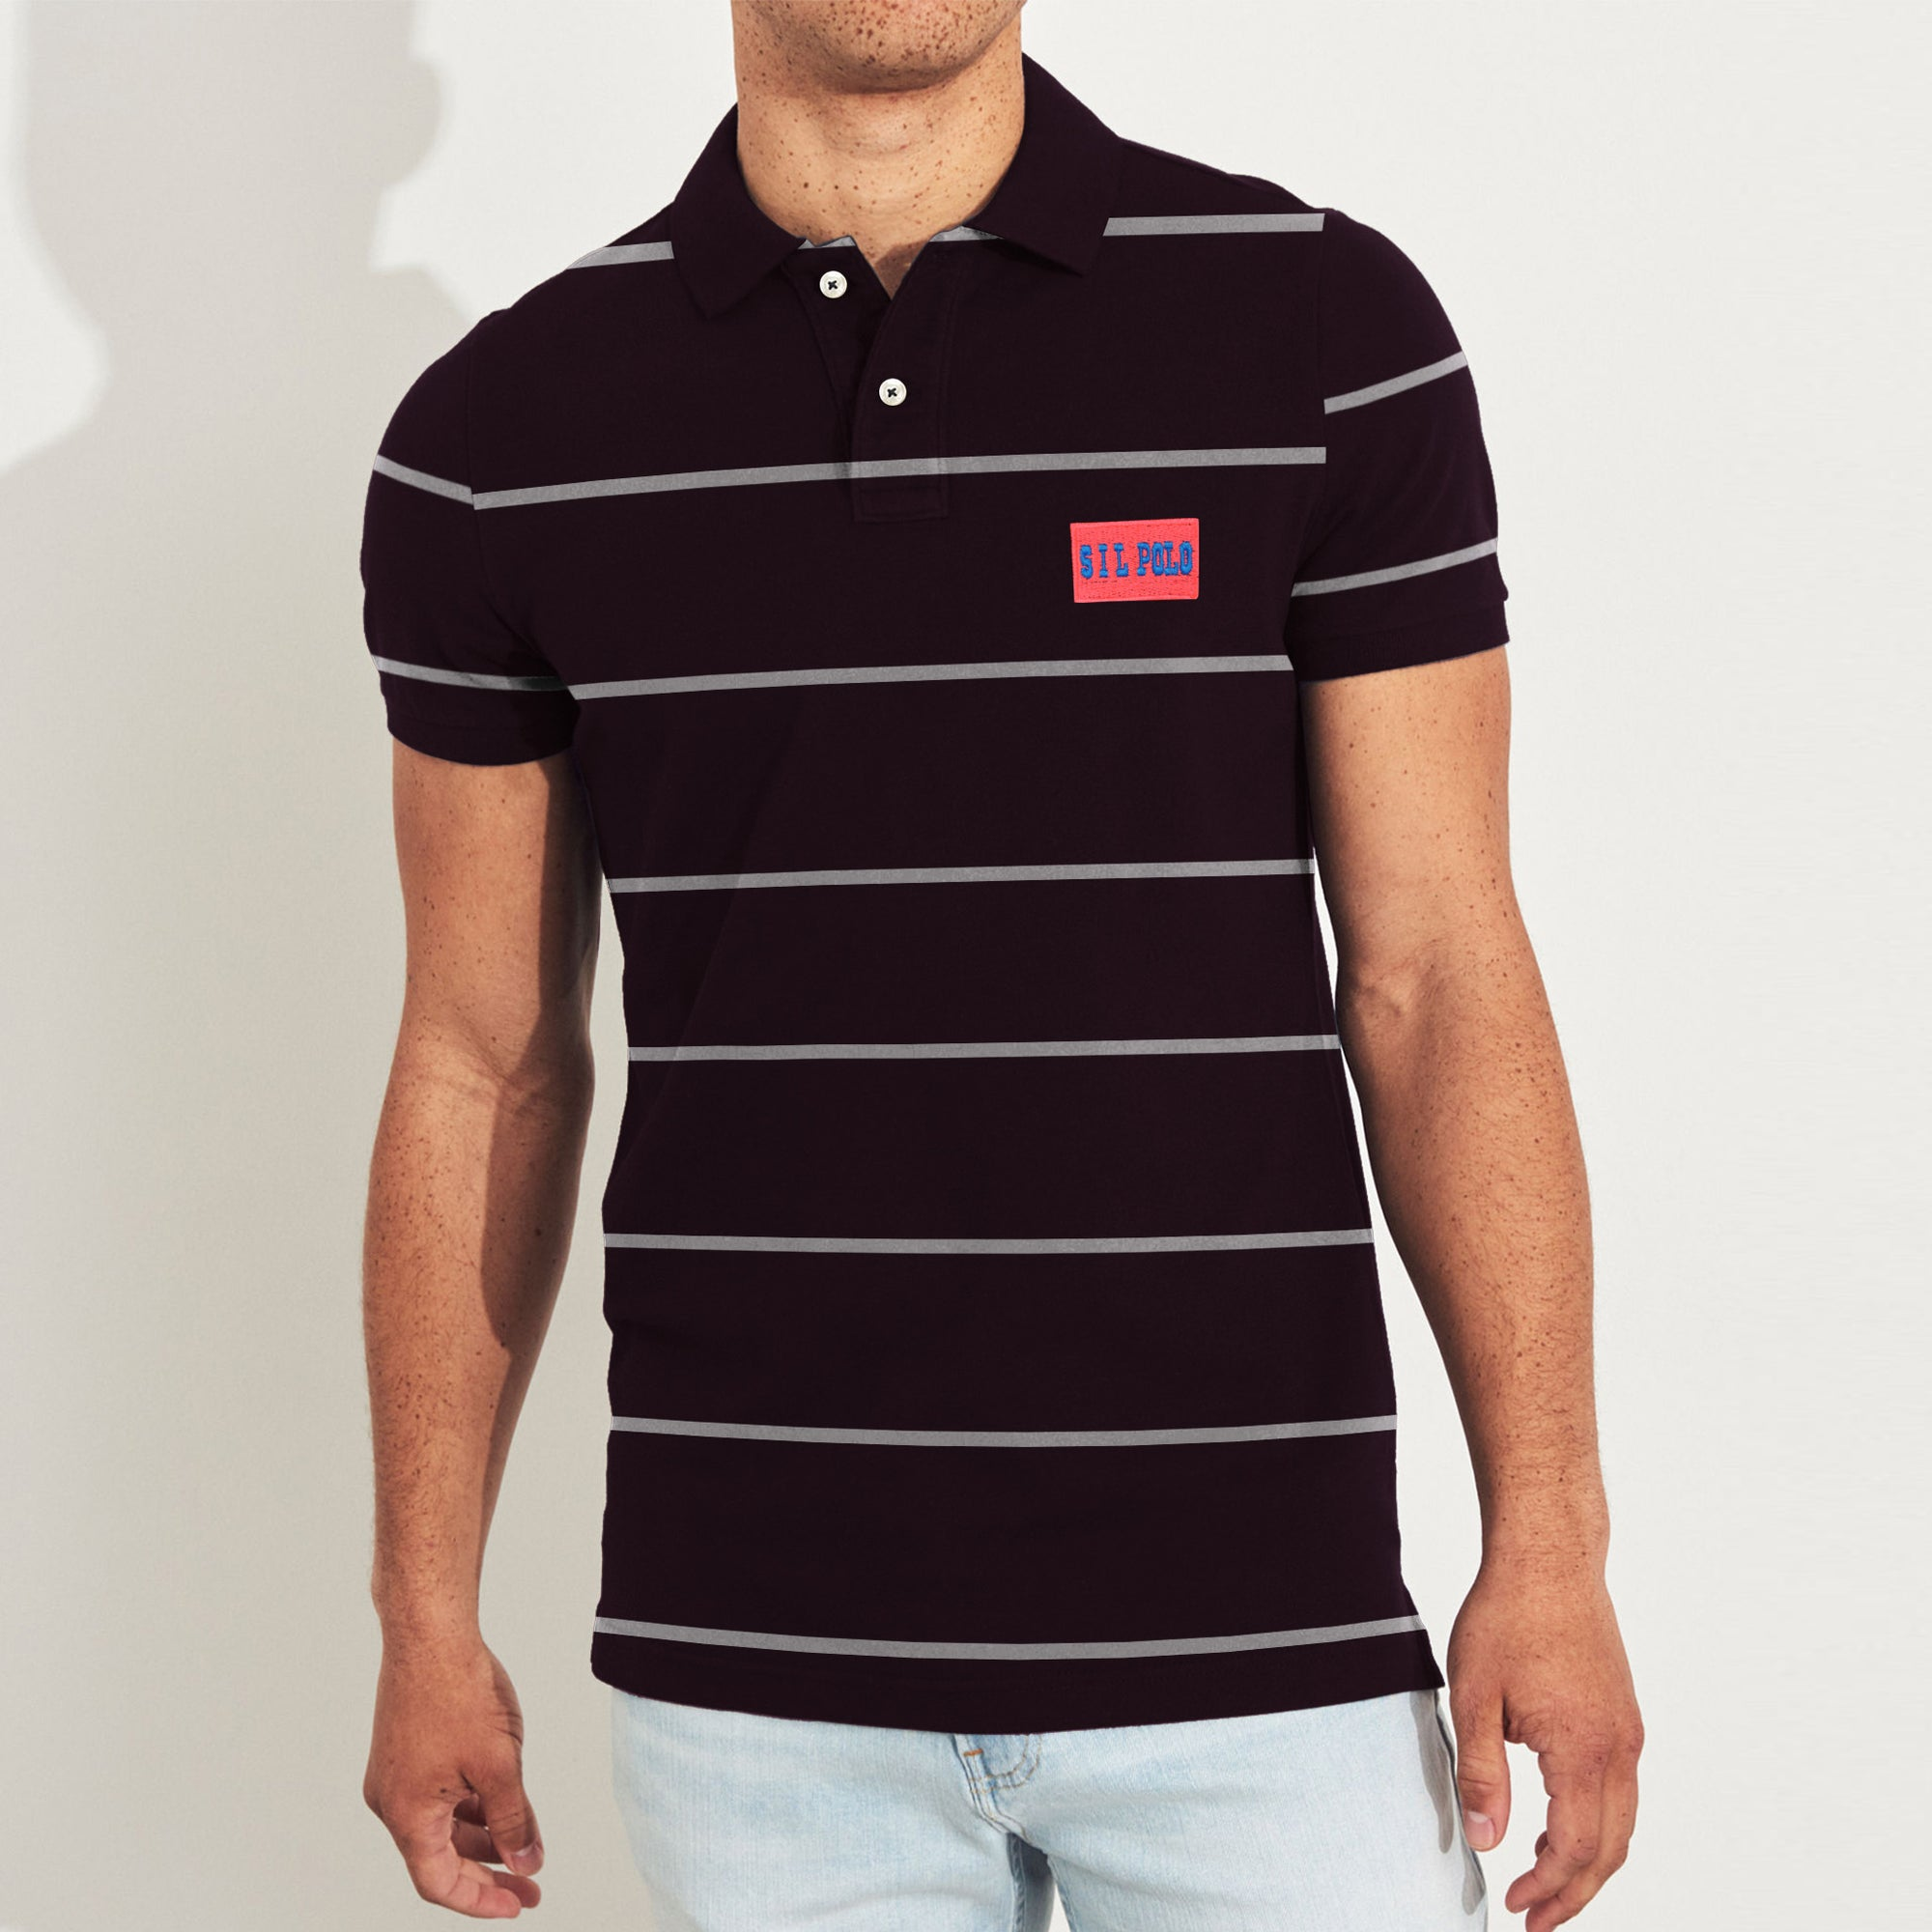 American Eagle Cut Label Short Sleeve P.Q Polo Shirt For Men-Dark Maroon & White Stripe-BE8615